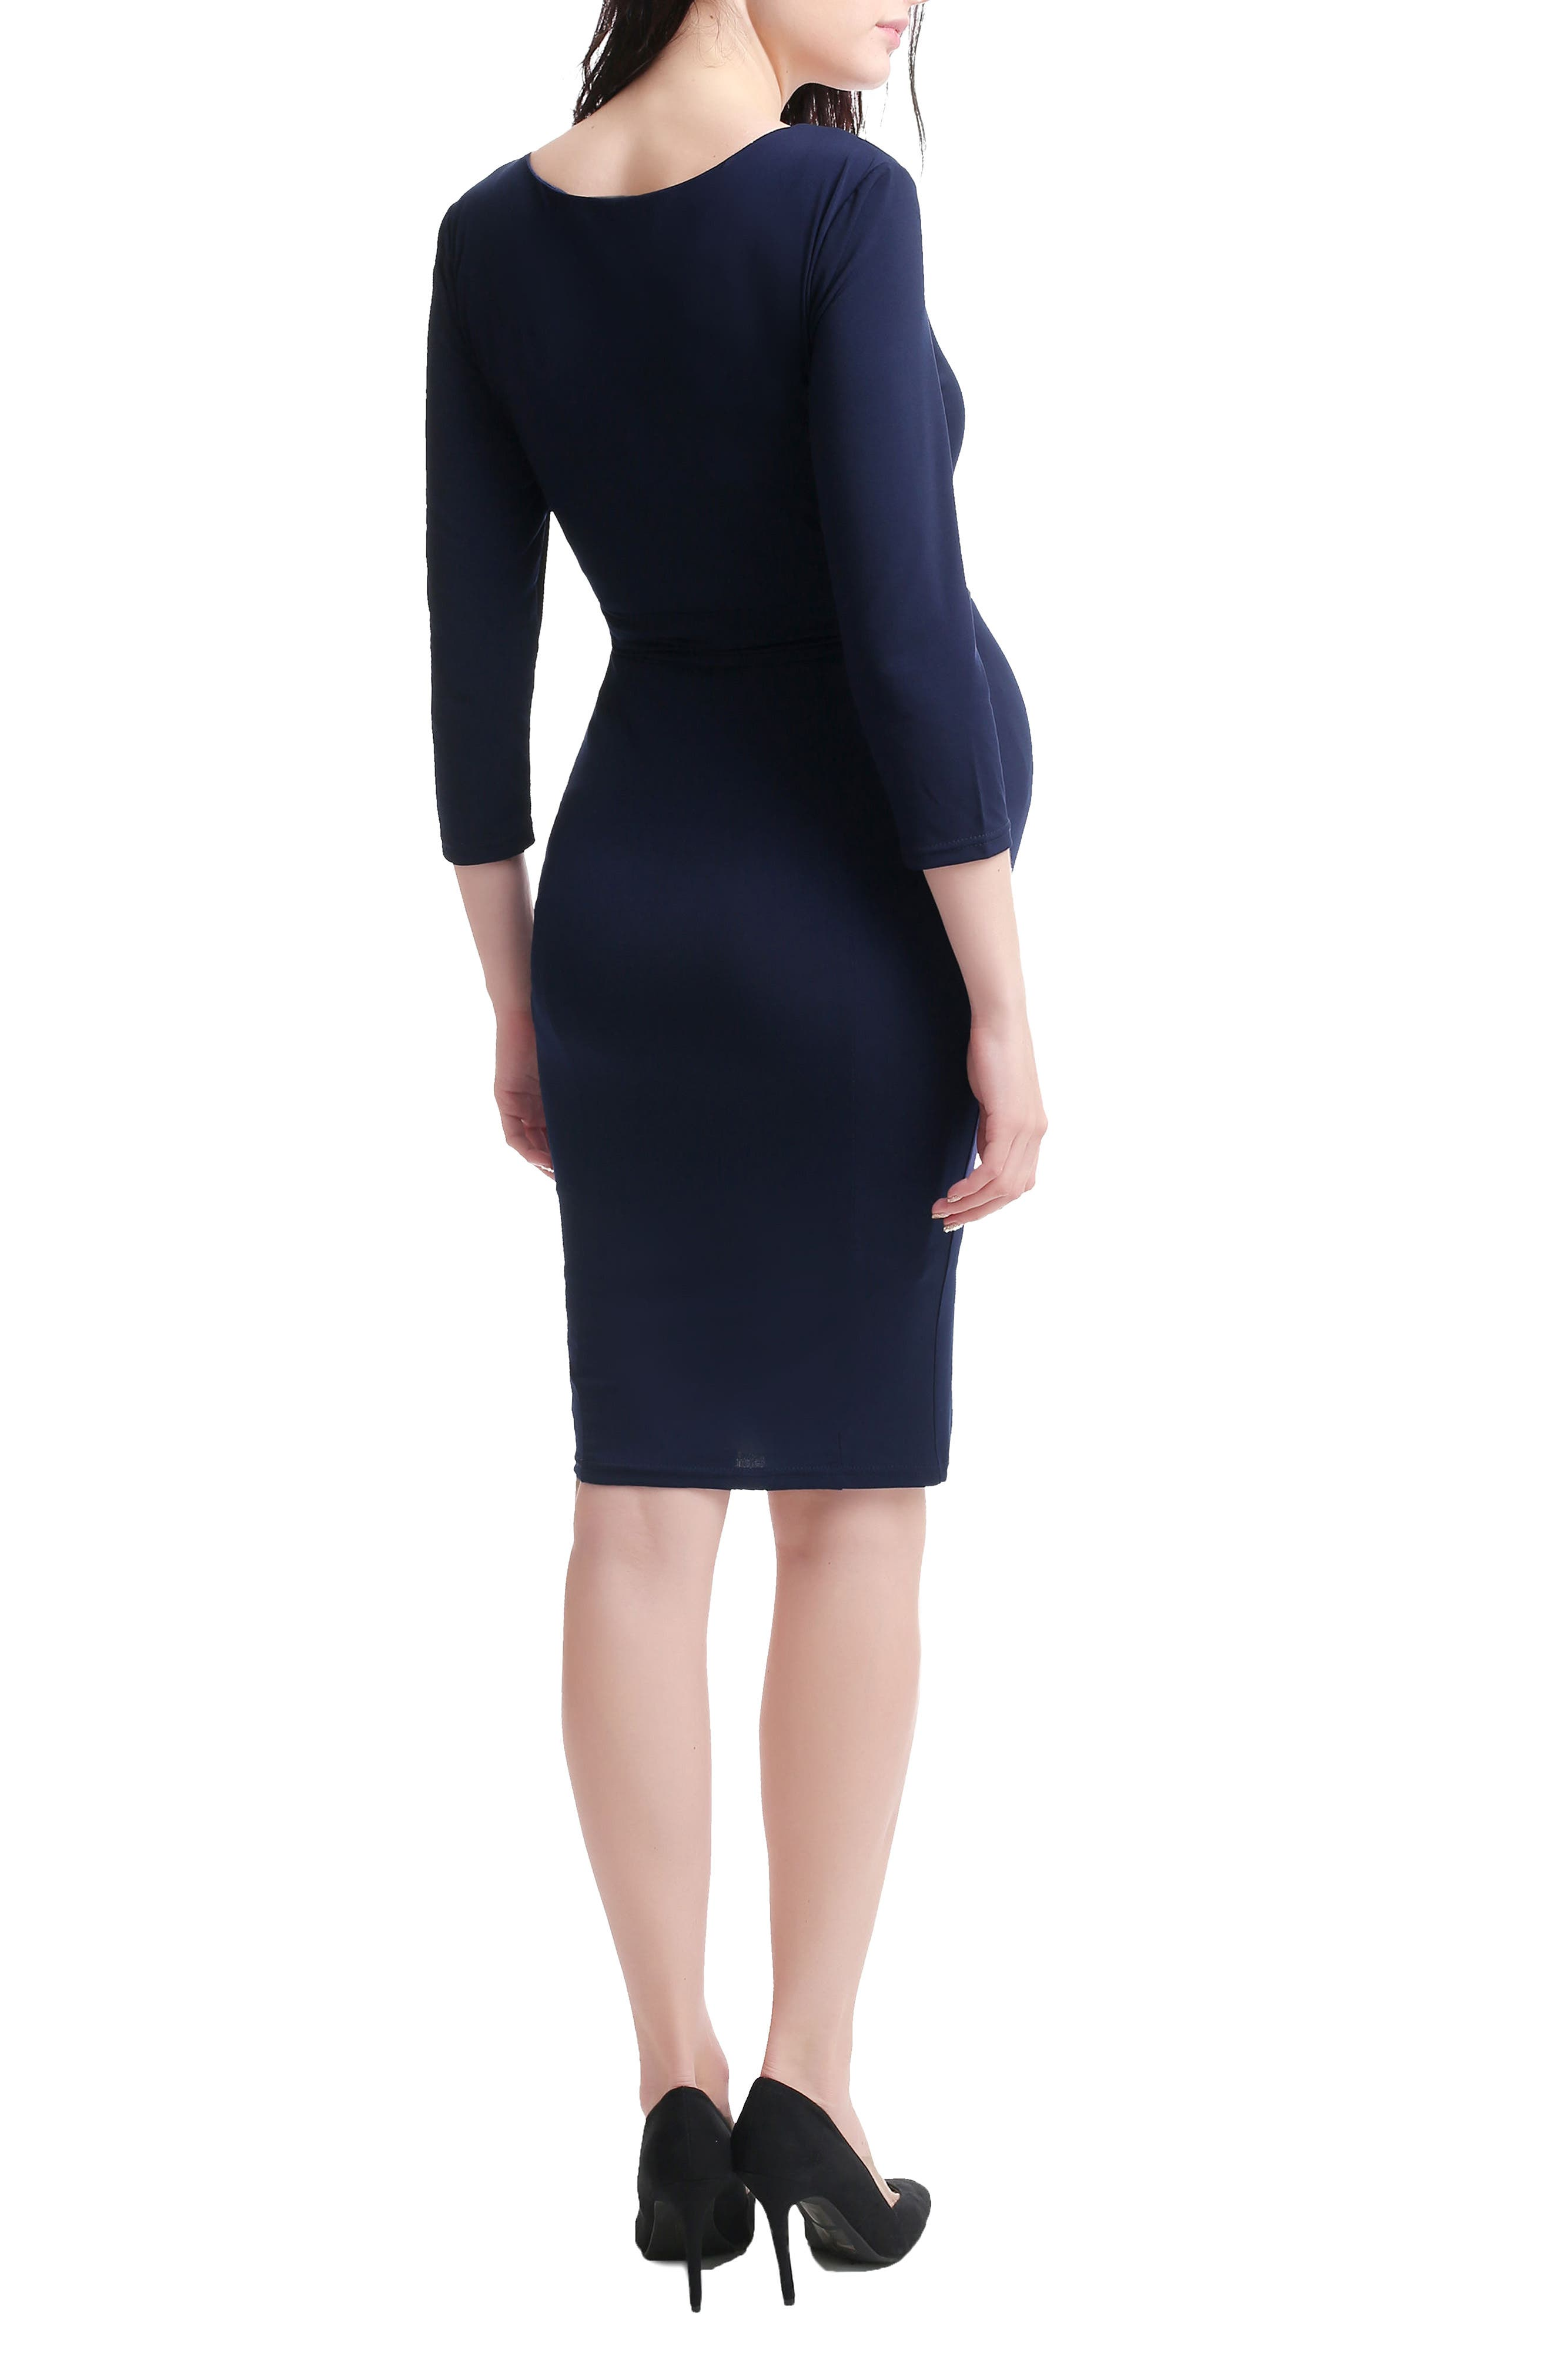 Penelope Maternity Dress,                             Alternate thumbnail 2, color,                             NAVY